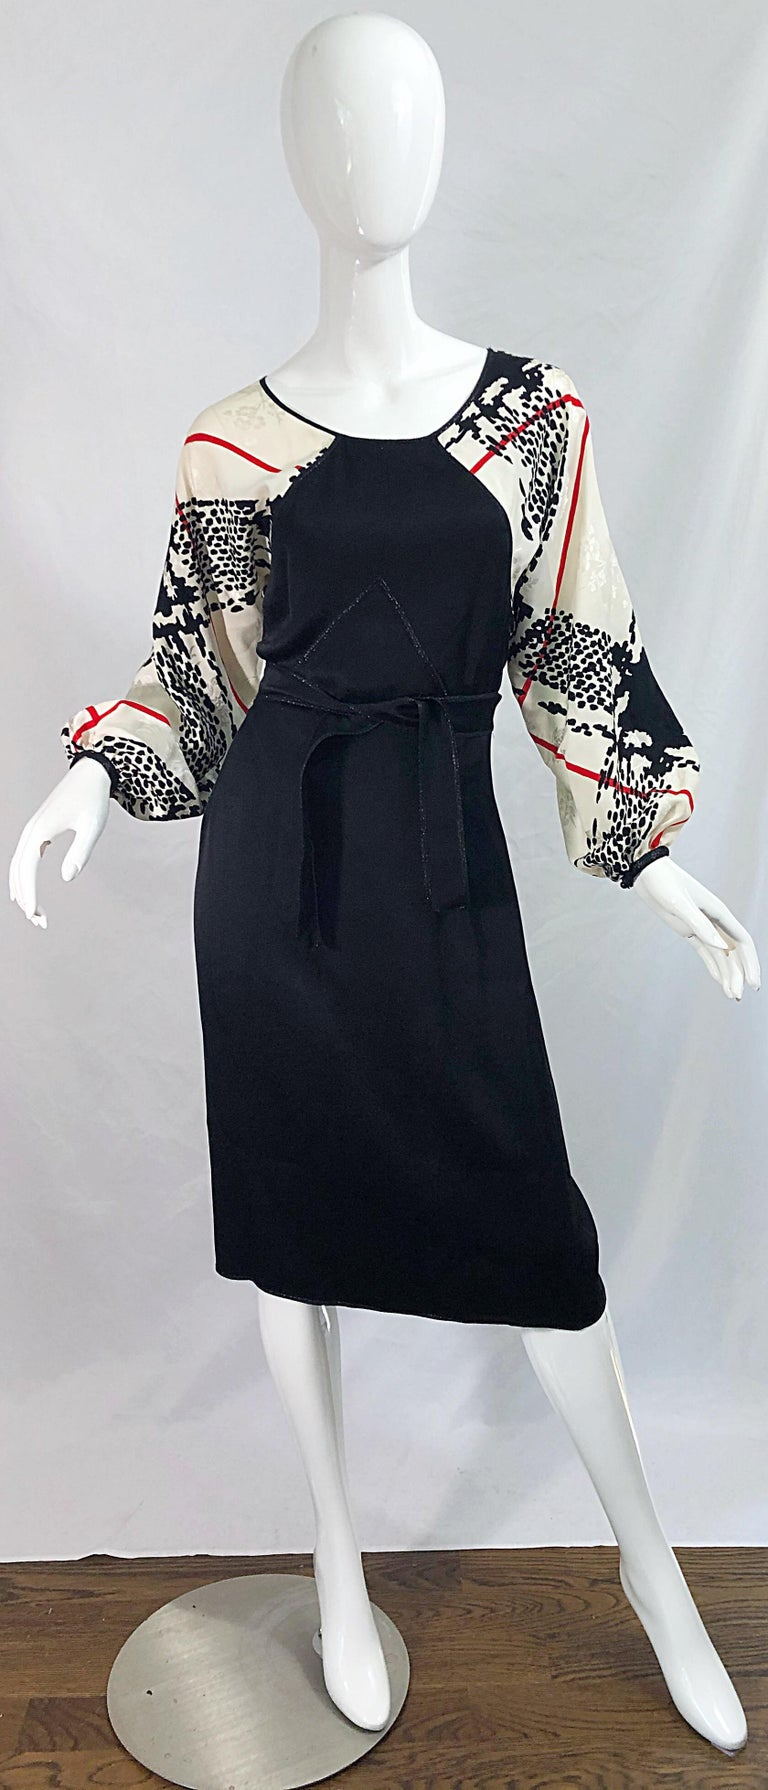 Vintage Geoffrey Beene Size 6 Houndstooth Black + White + Red Silk 80s Dress In Excellent Condition For Sale In Chicago, IL